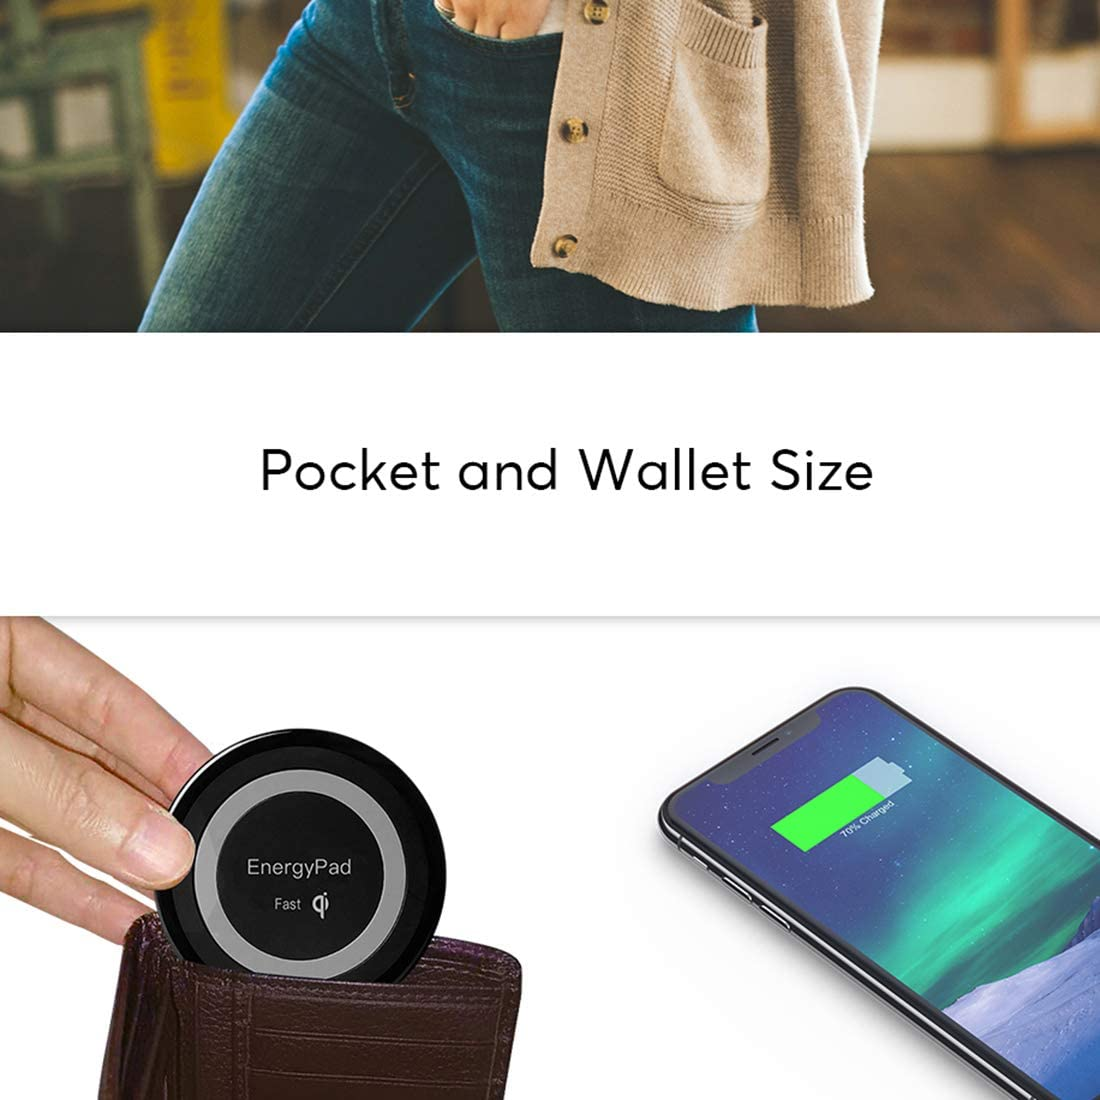 10W Qi-Certified Ultra-Slim IP67 Waterproof Wireless Charging Pad,/Compatible with iPhone X//XS Max//XR//XS//8 Urlitoy Wireless Charger Fast-Charging Samsung Galaxy S9//S8//S7 More No AC Adapter White